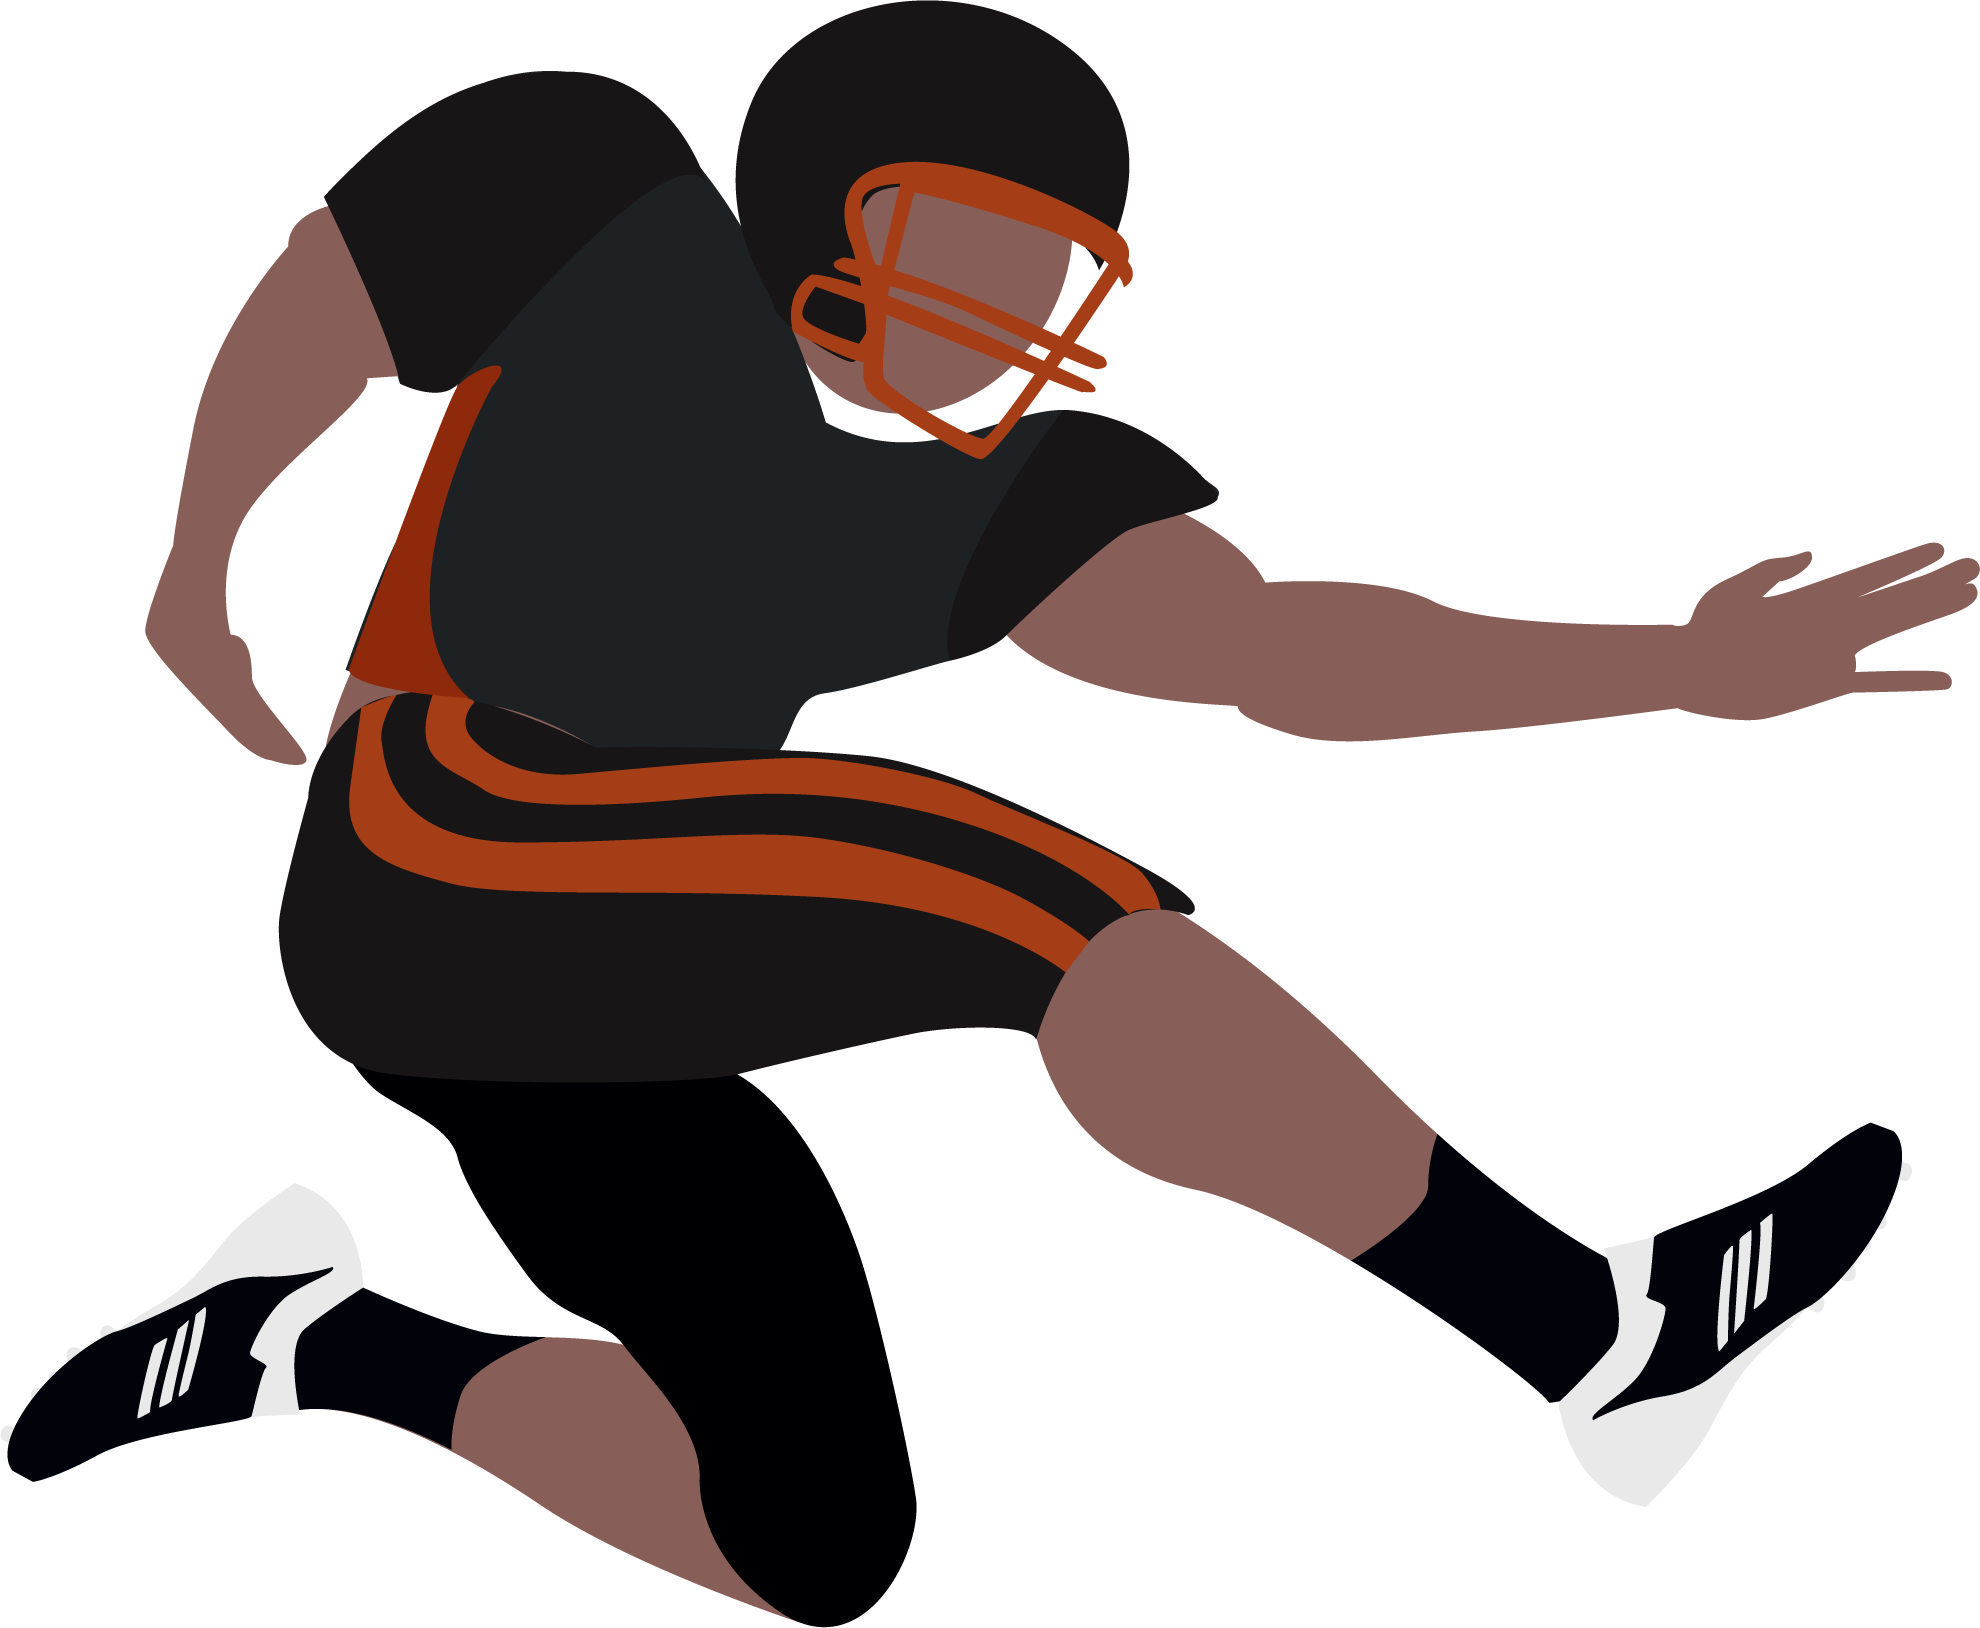 Football clipart thread. The student section ozy